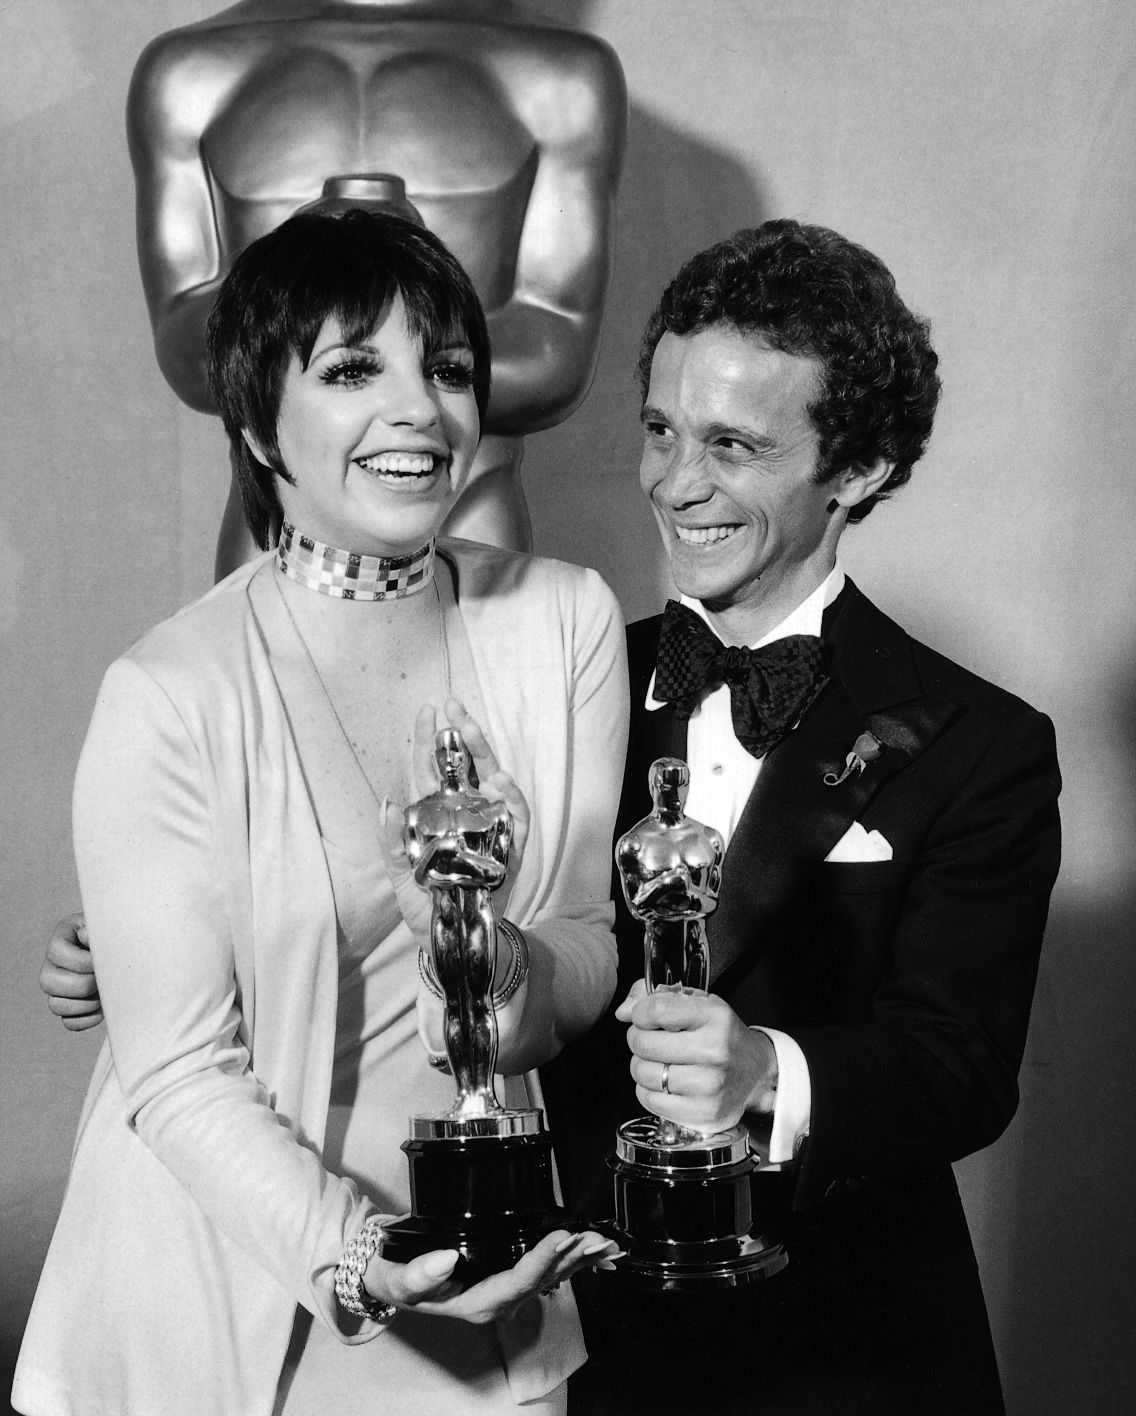 """The Academy Awards Ceremony Best Actress Oscar Best Supporting Actor Oscar Liza Minnelli Joel Gray for """"Cabaret"""" 1972 on March 1973 at the Annual Academy ..."""